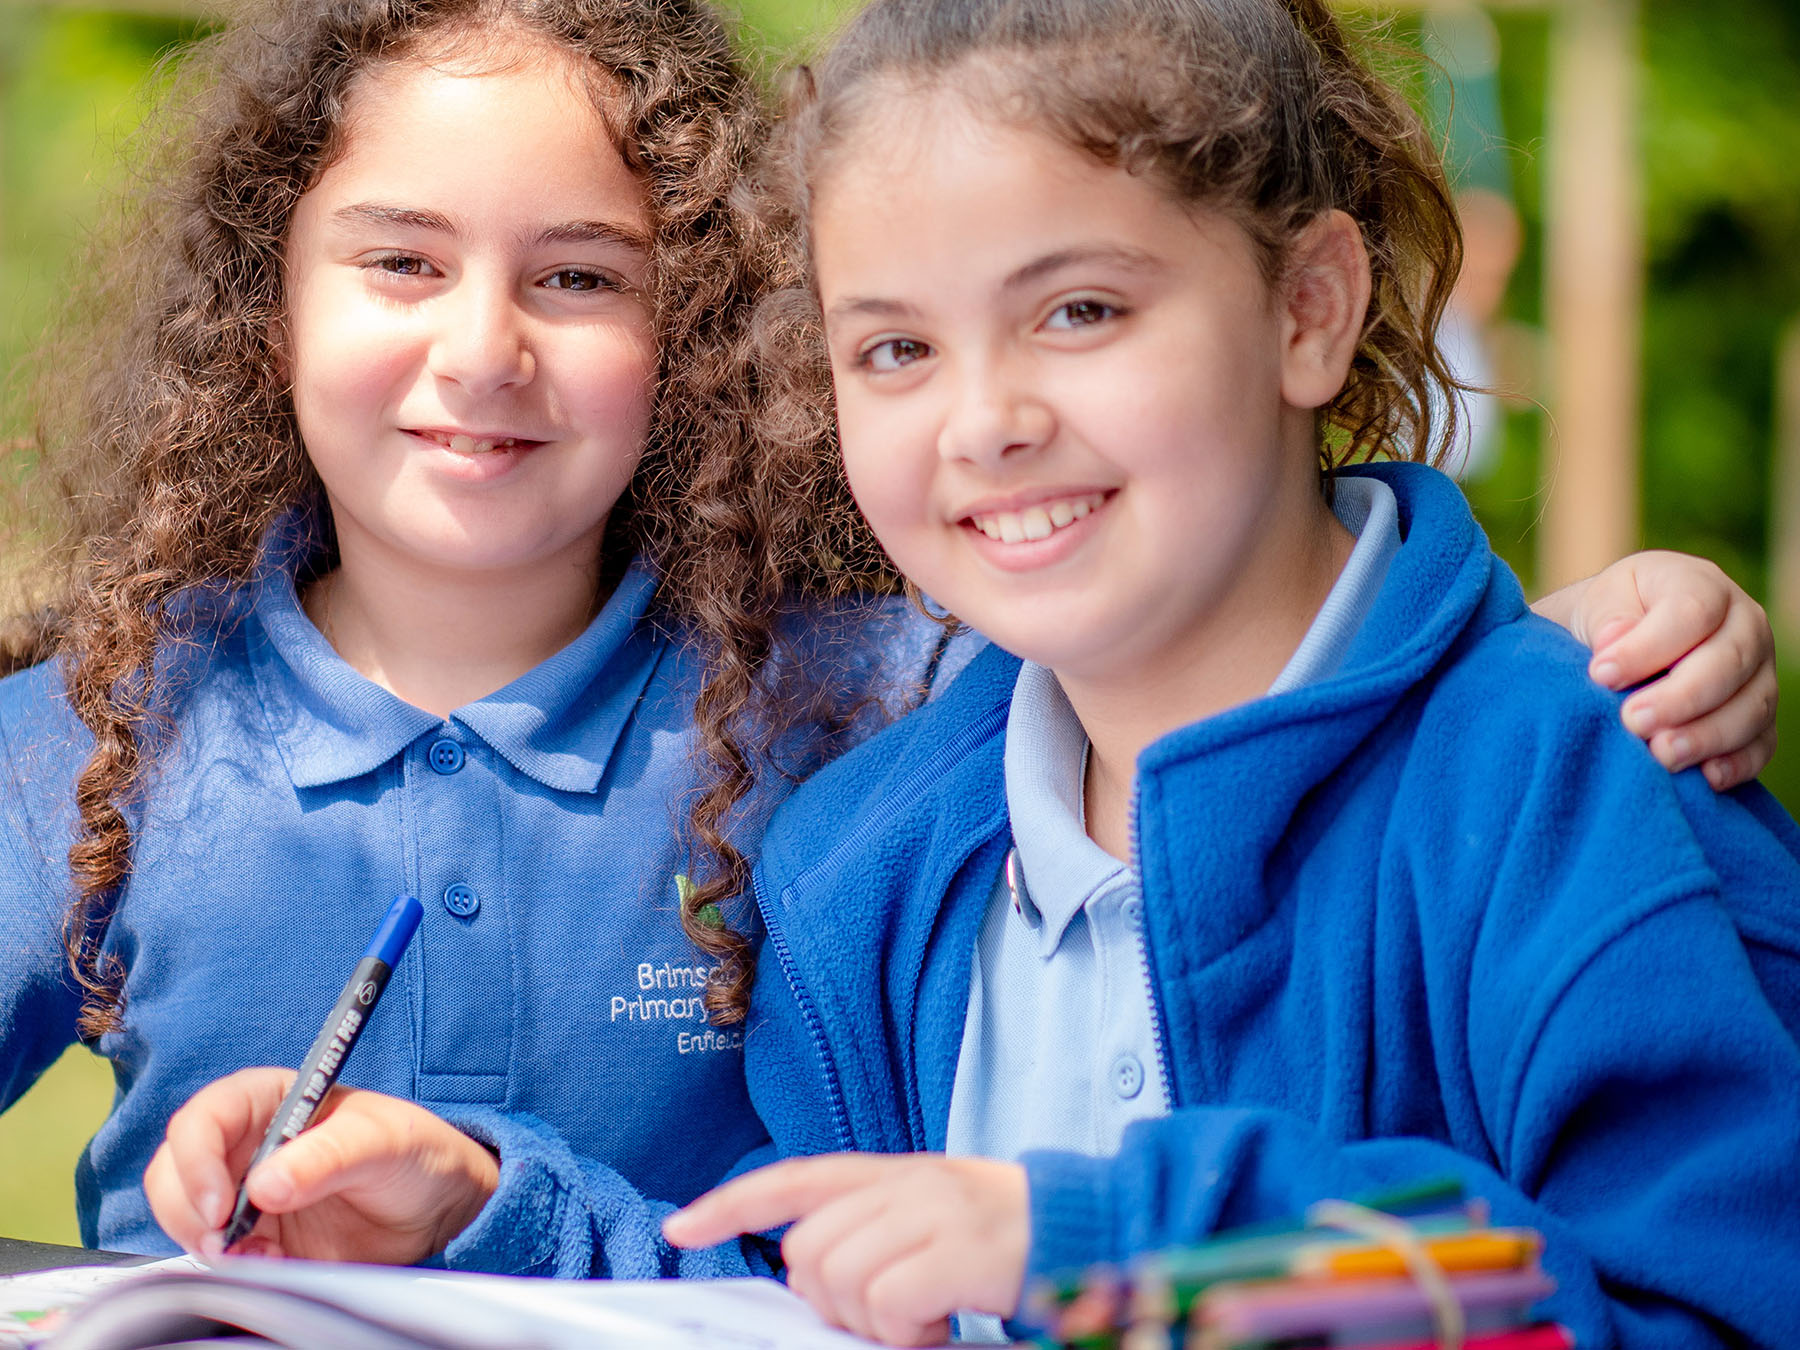 Two primary school girls working on bench outside smiling at the camera